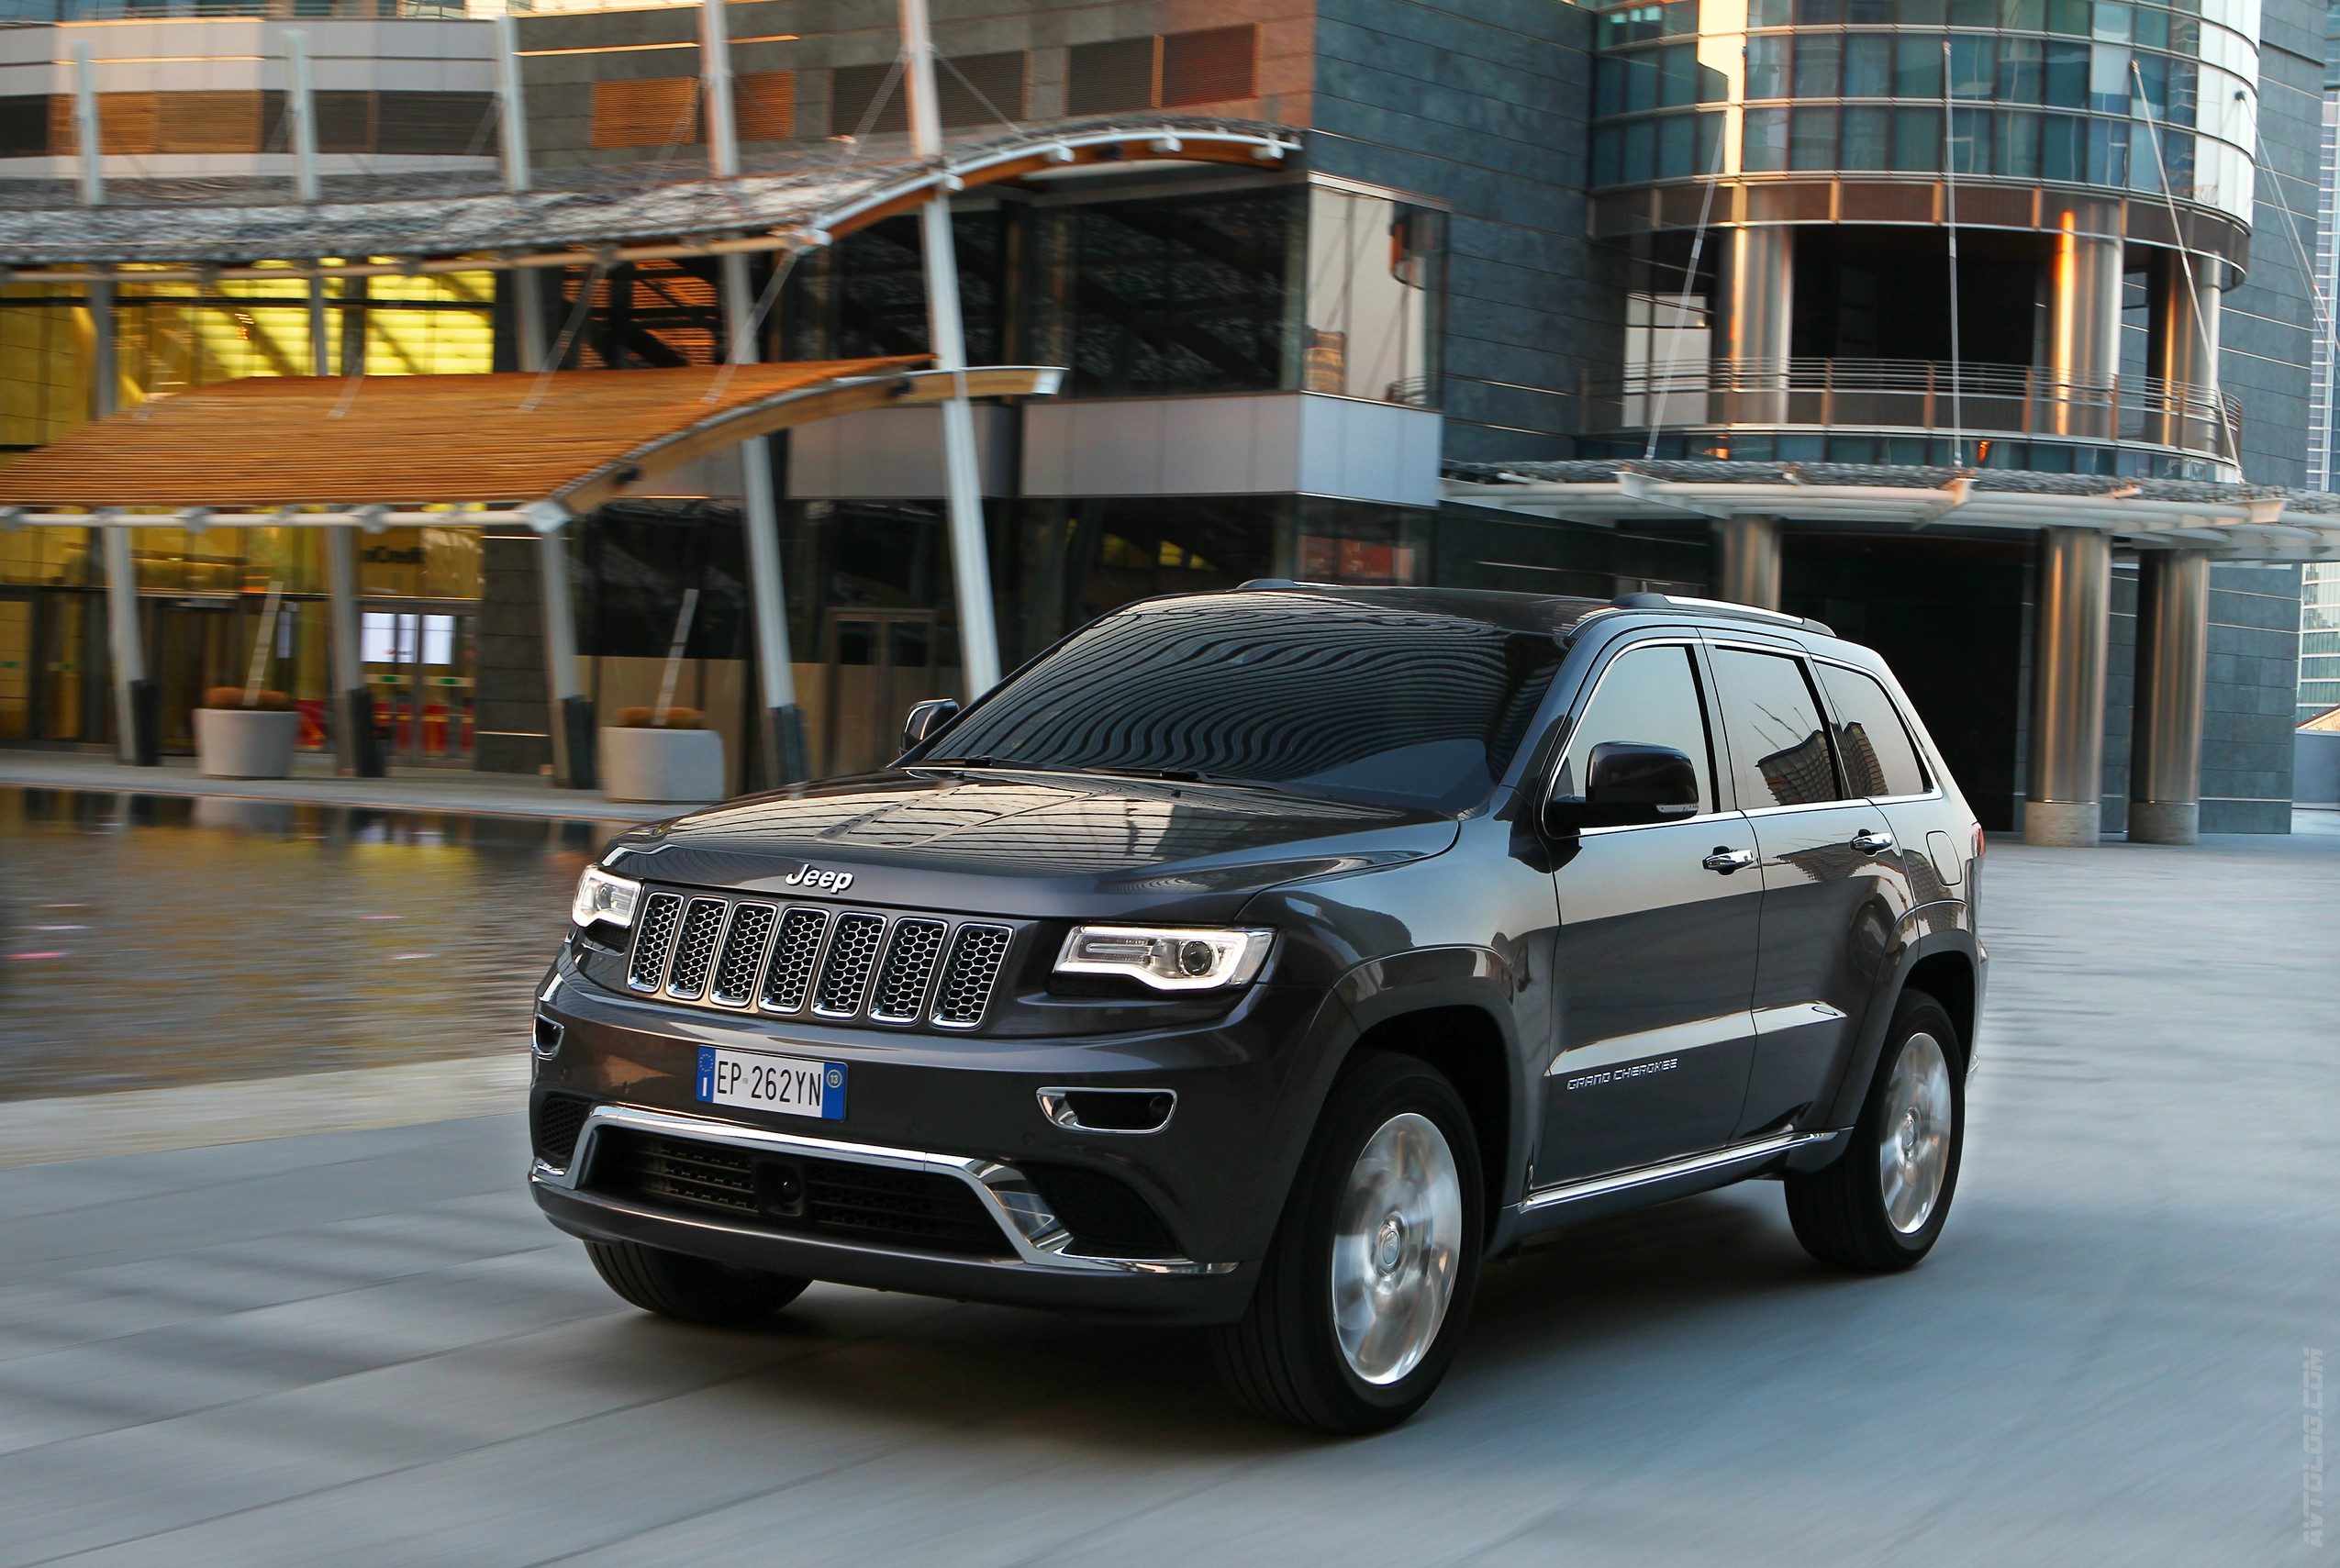 2018 Jeep Cherokee EU Version photo - 2